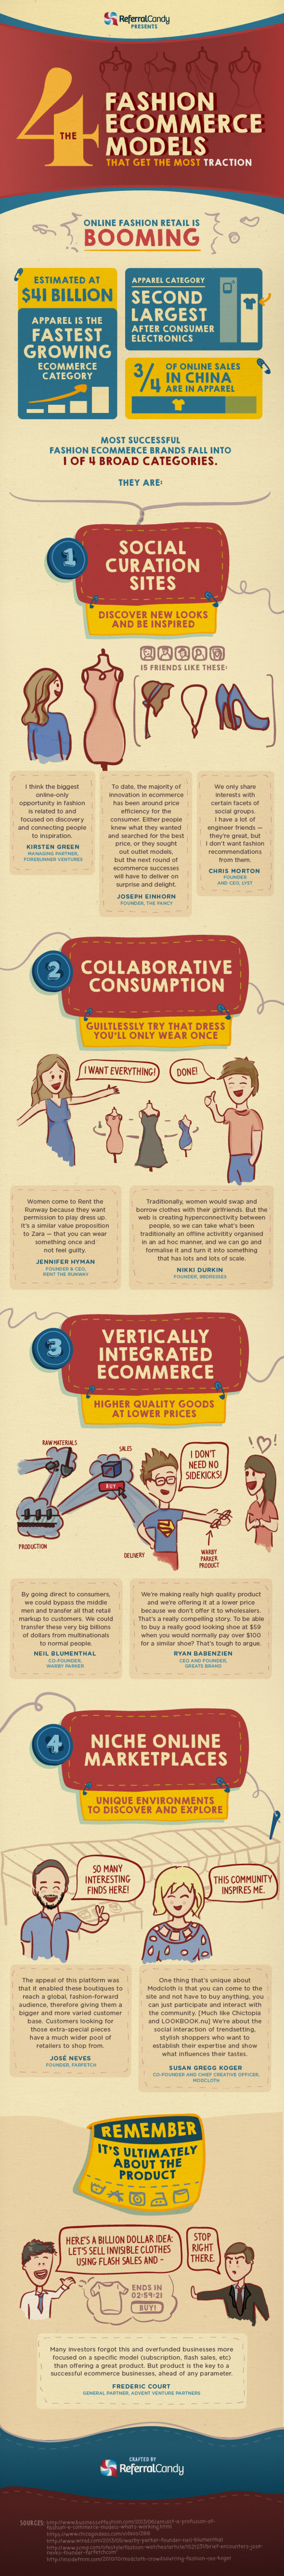 The 4 Fashion Ecommerce Models That Get The Most Traction Infographic